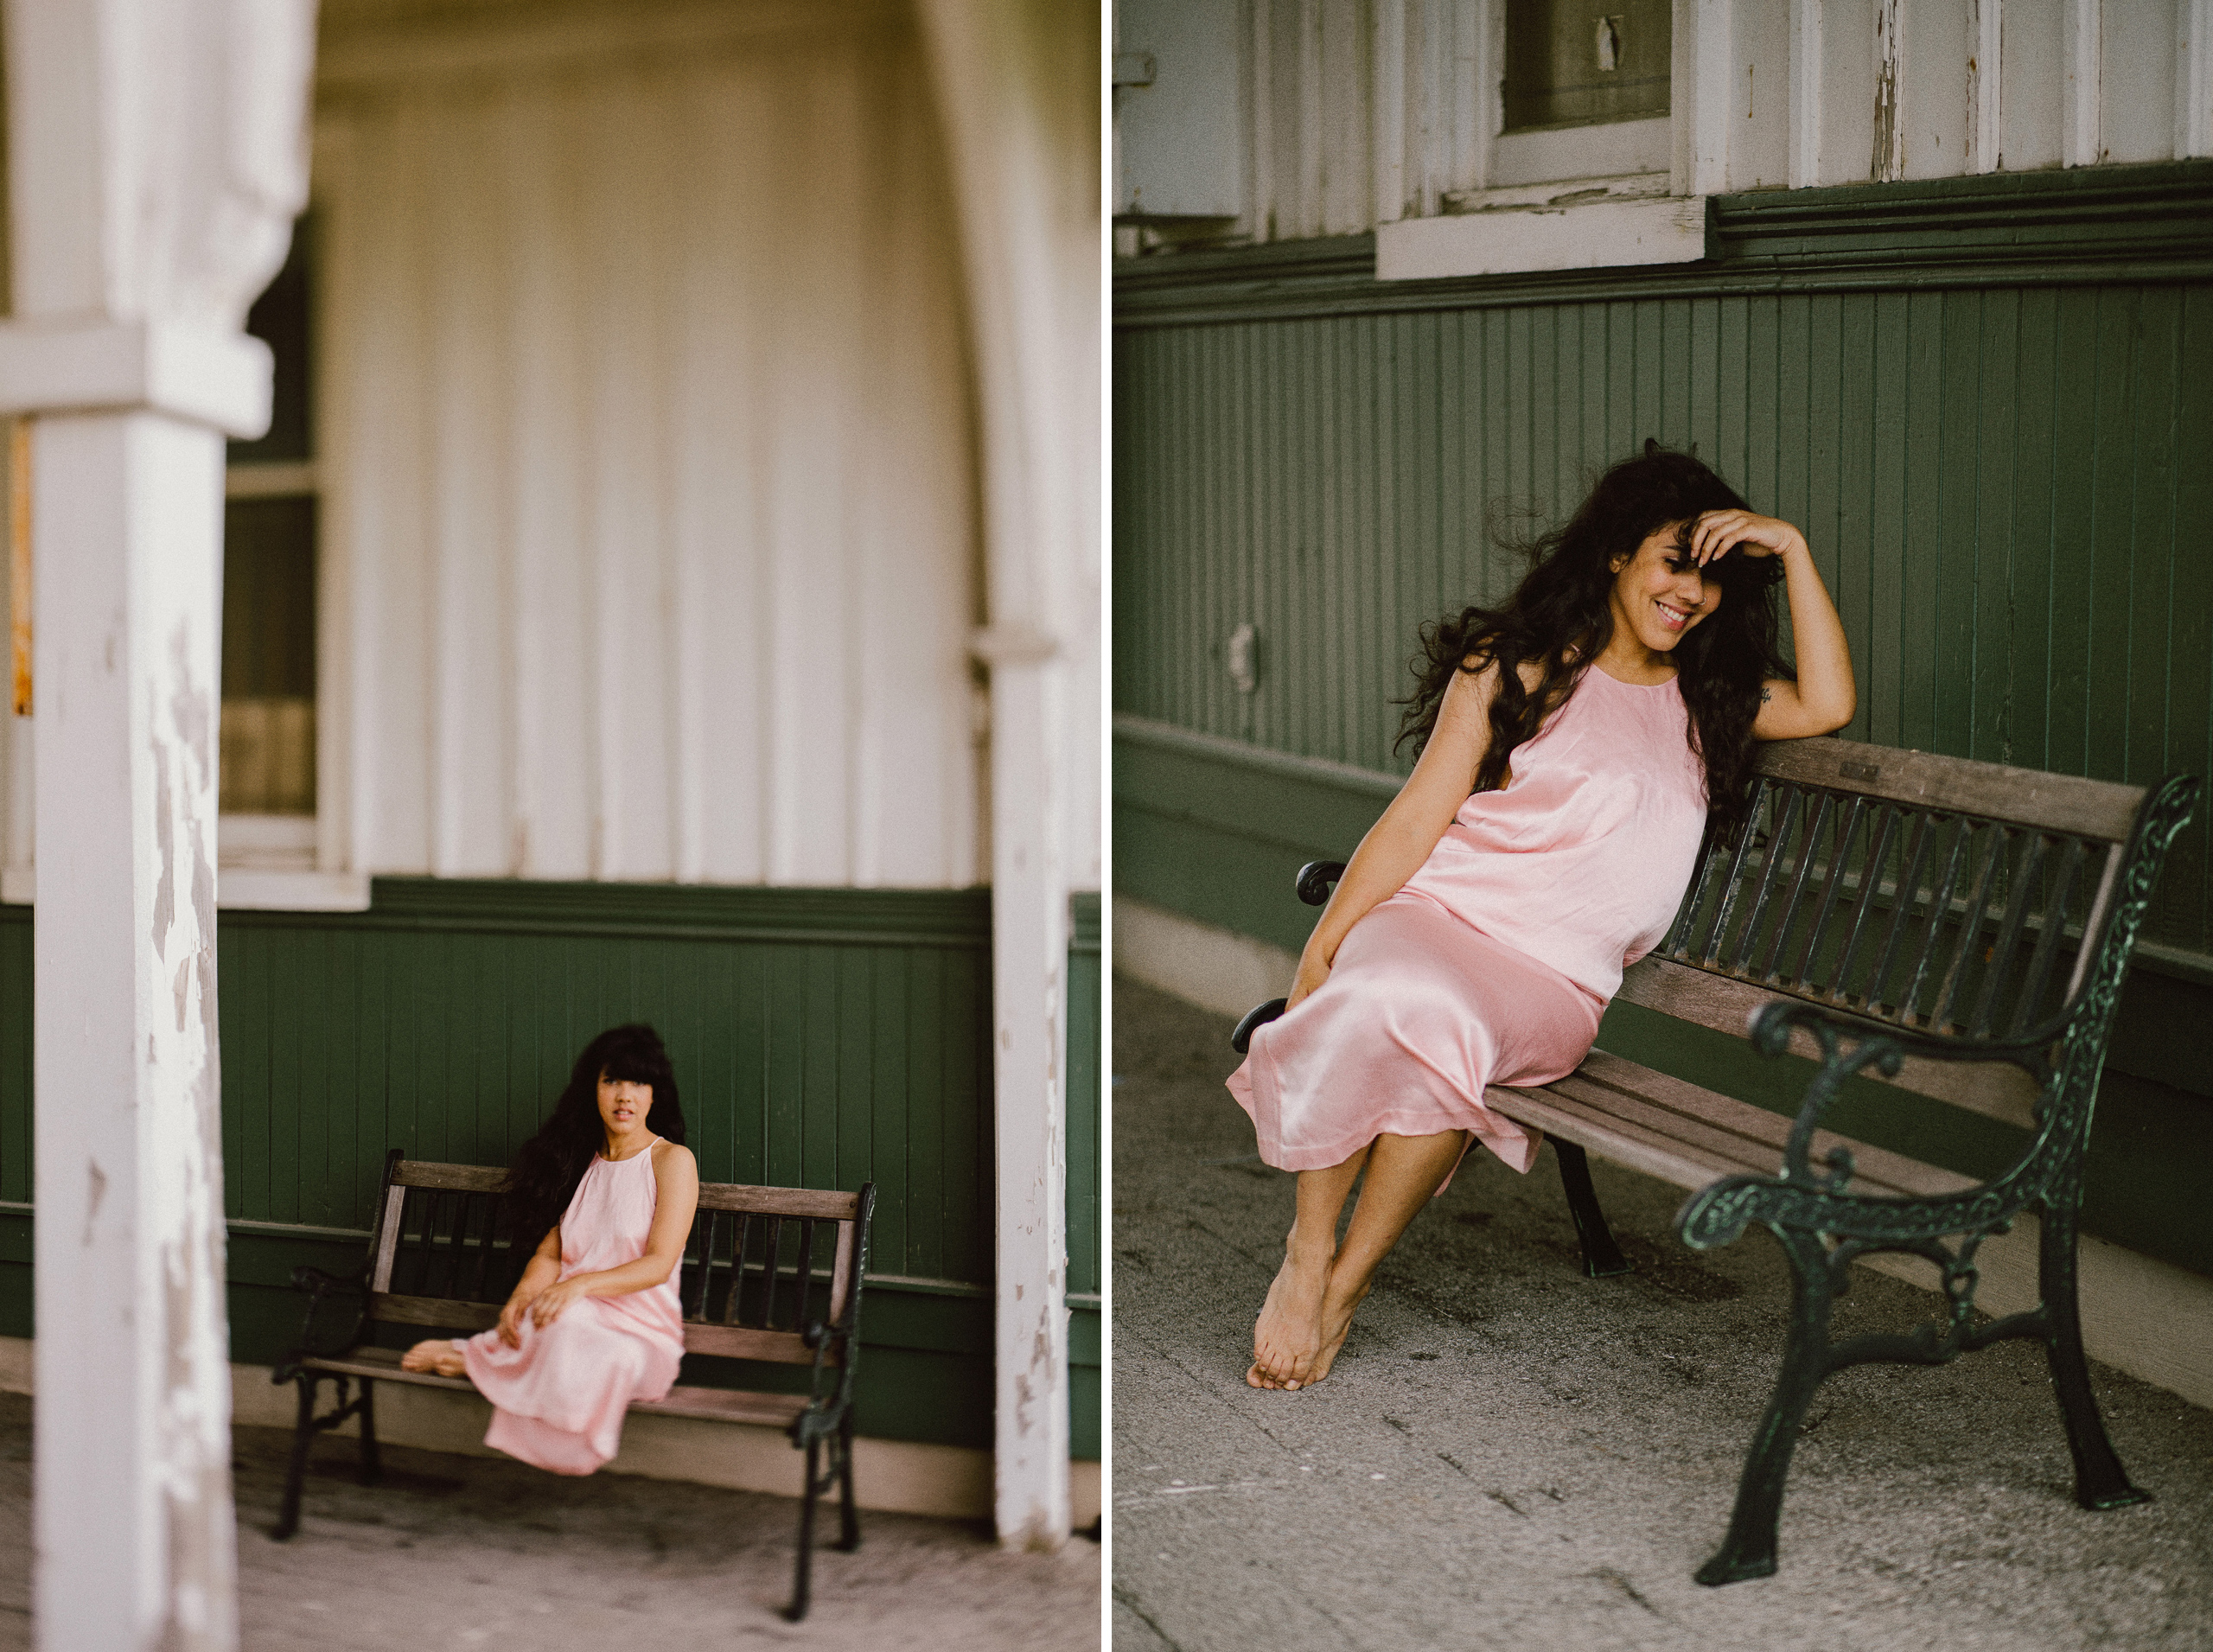 train station outdoor boudoir afterglow south coast beauty photographer